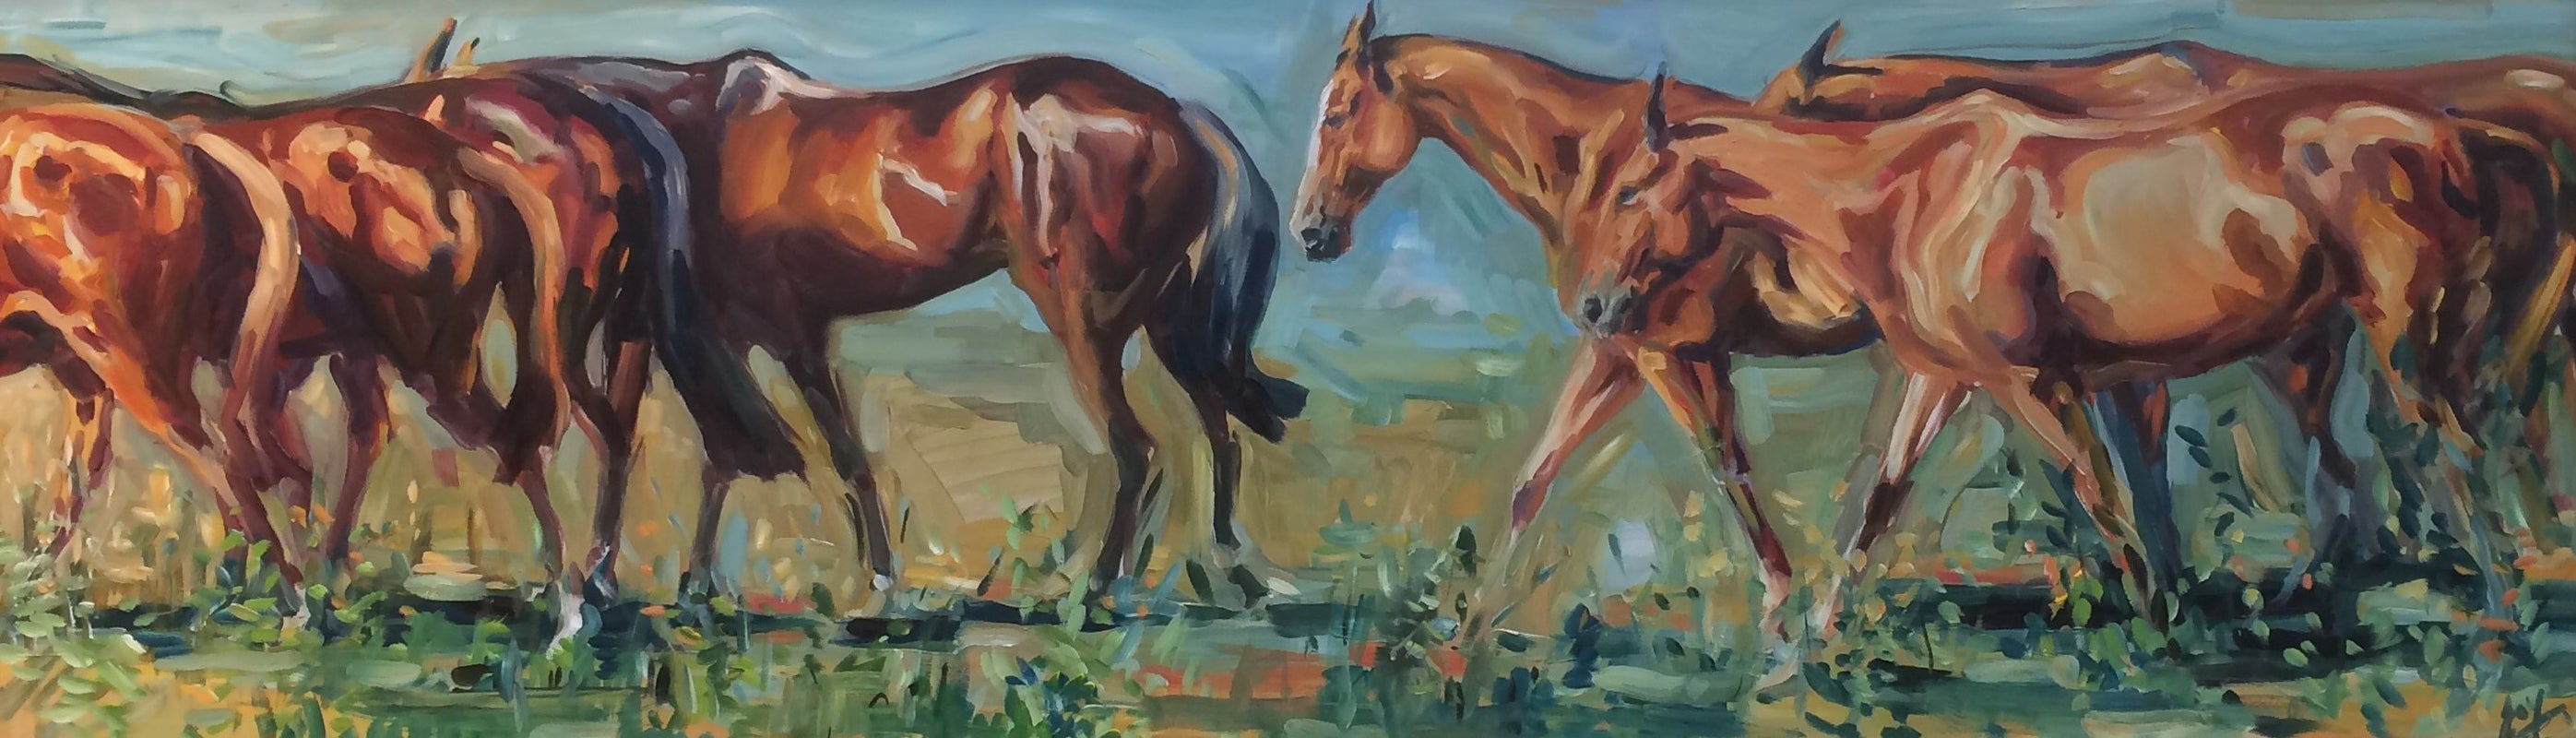 Summer Days Original, Oil on Board, Signed bottom right, polo ponies, summer,  2019